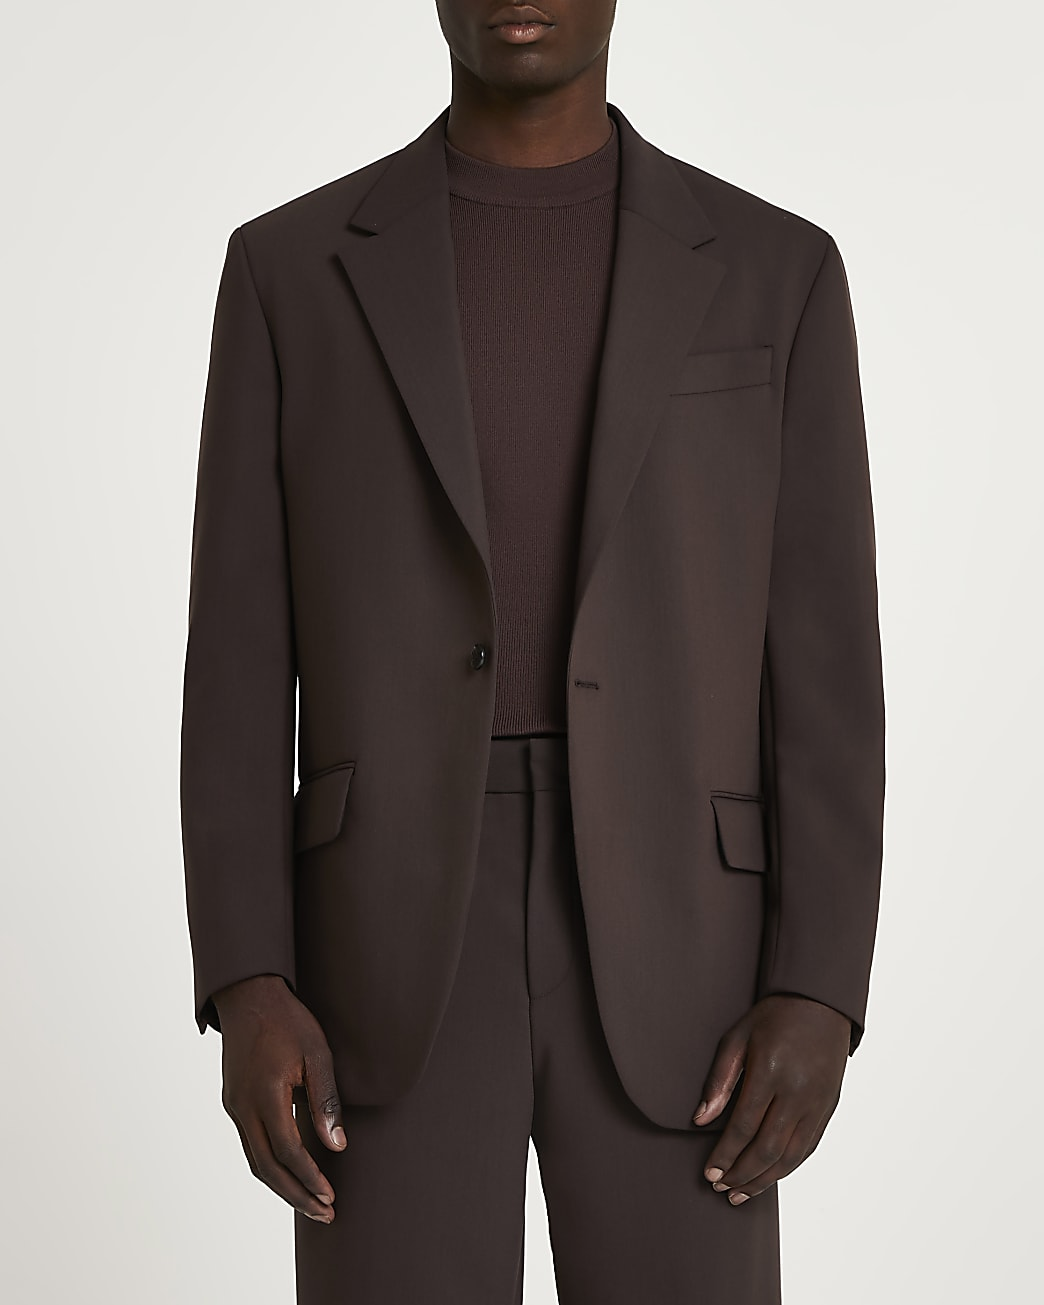 Brown relaxed fit suit jacket